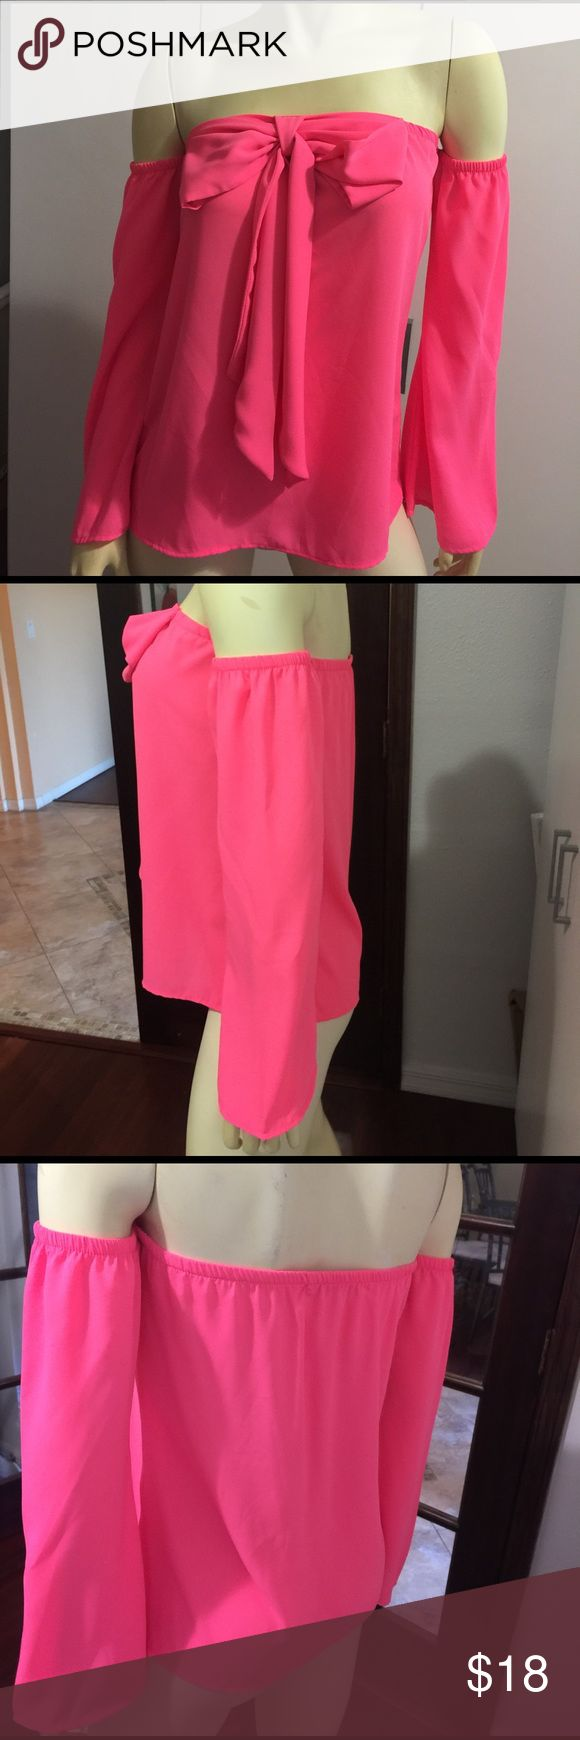 Blouse Hot pink blouse Tops Blouses